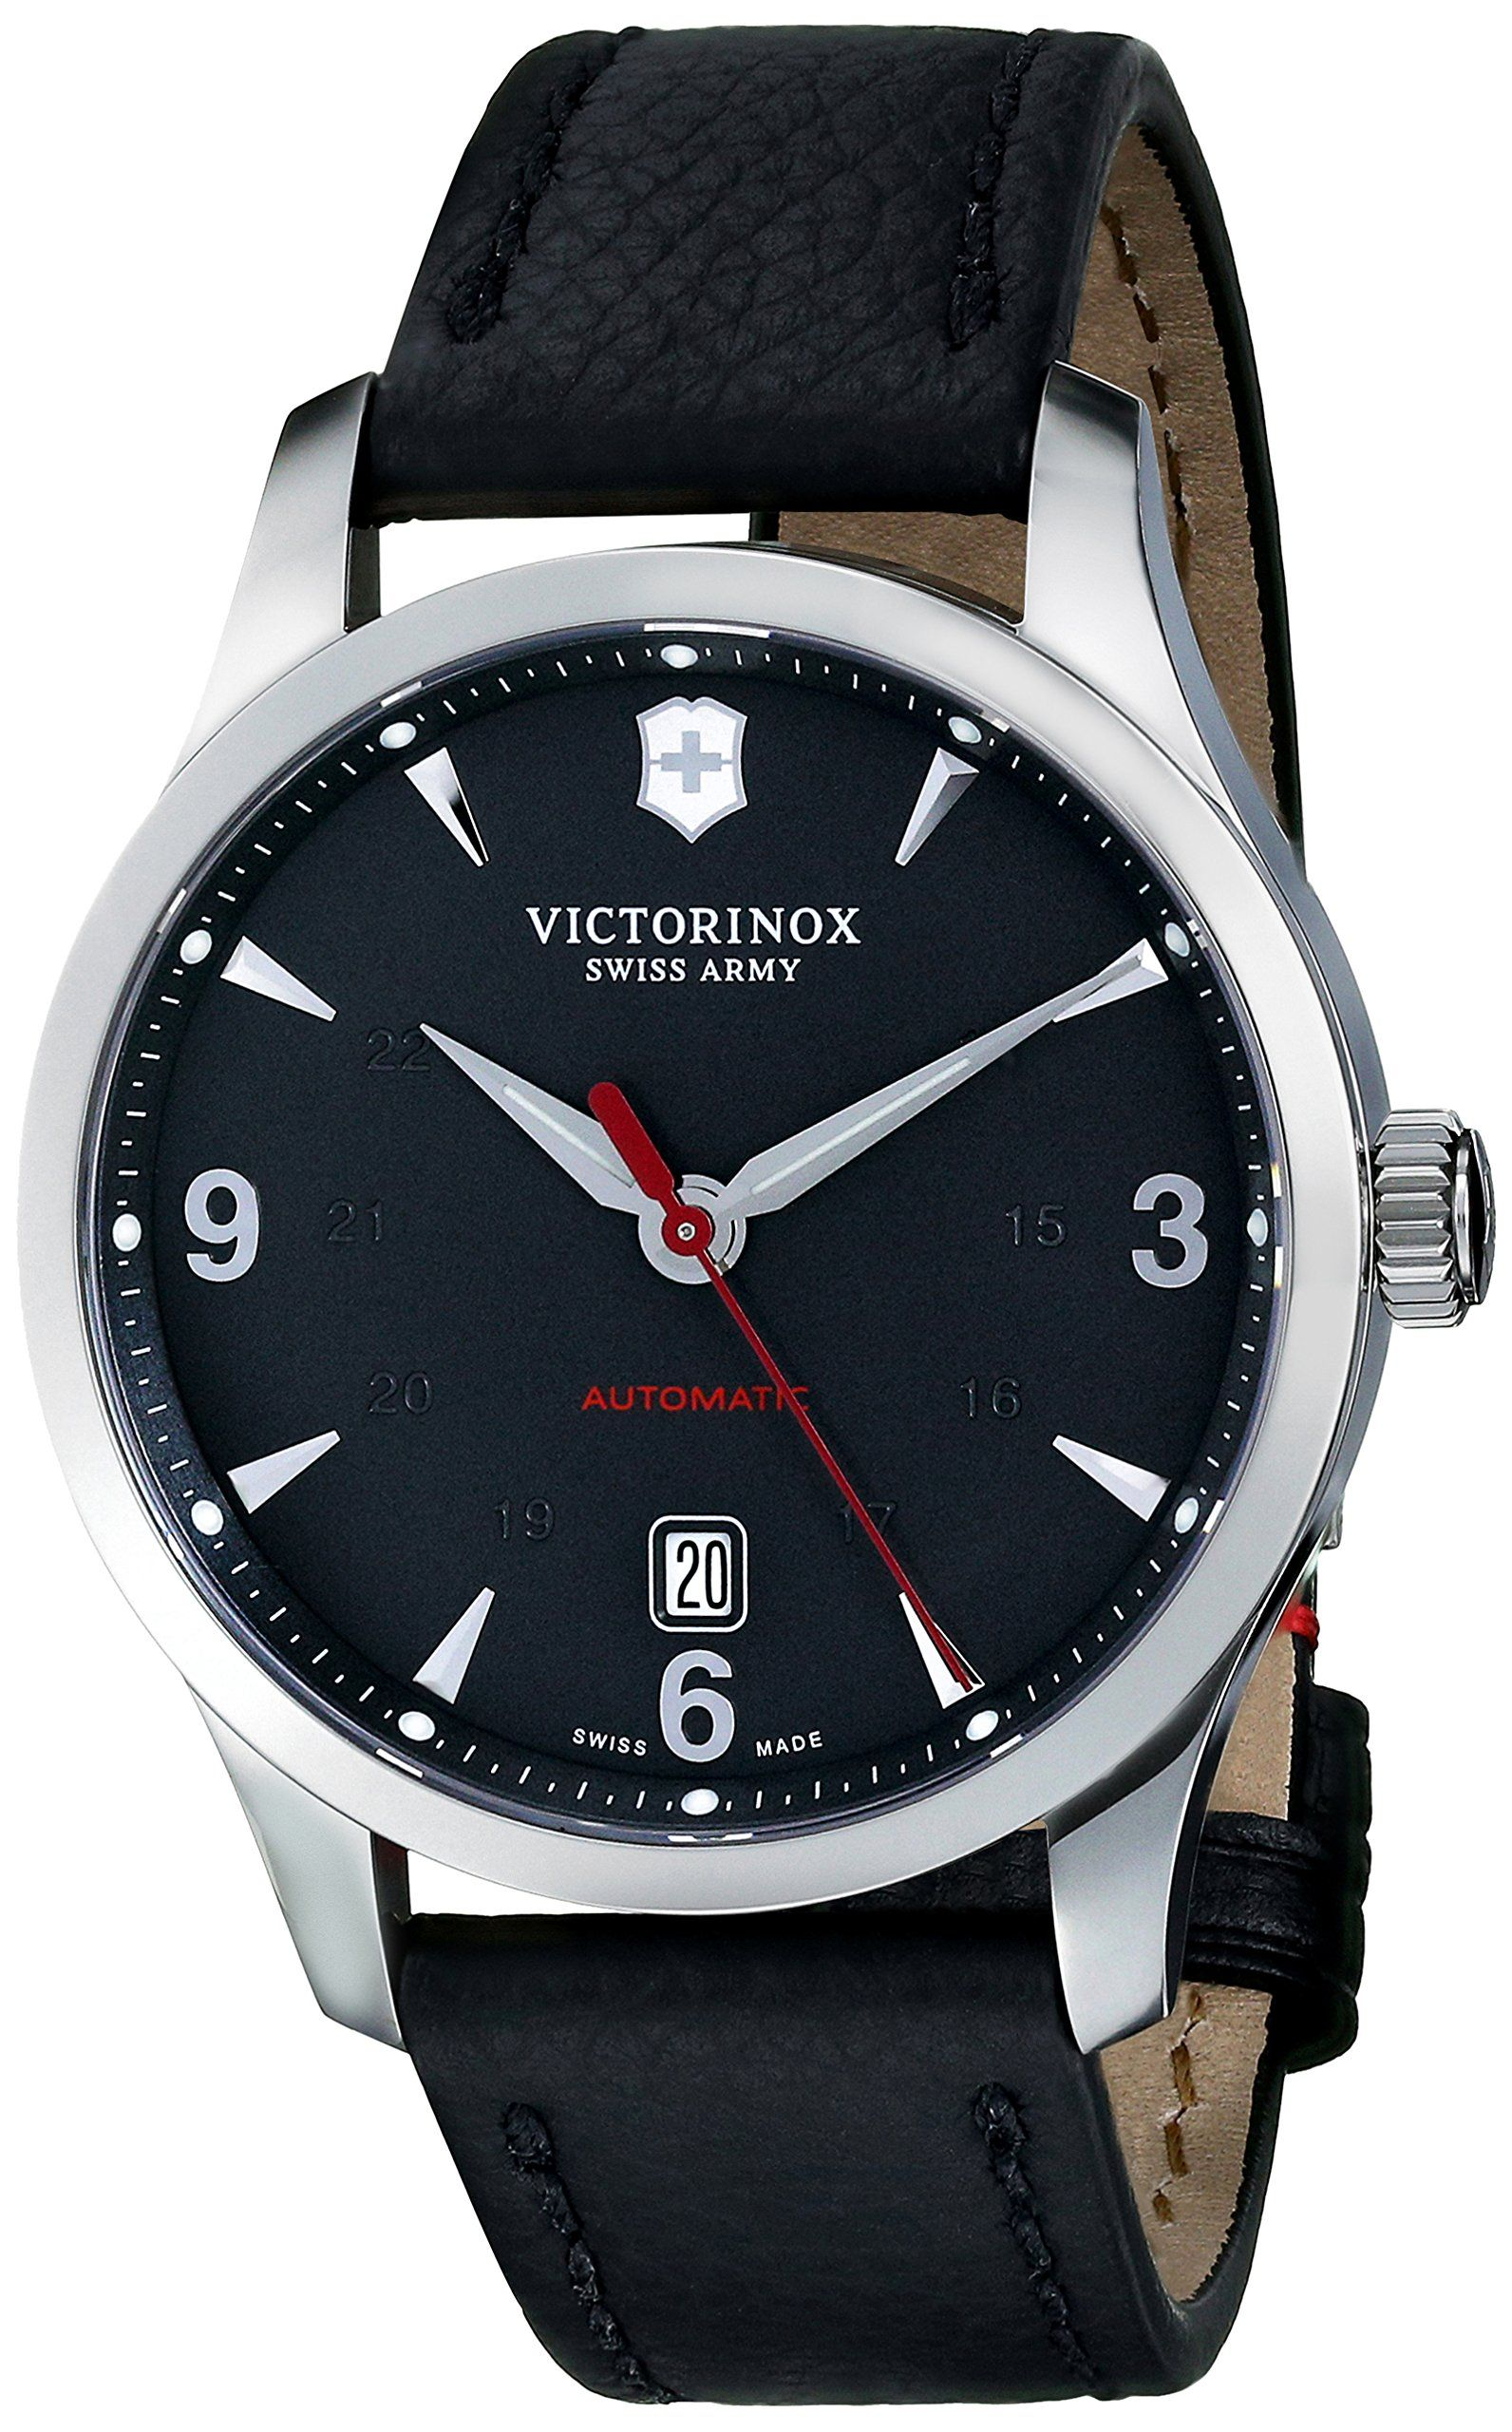 com watches swiss men s leather maverick a army watchtag watch mens victorinox